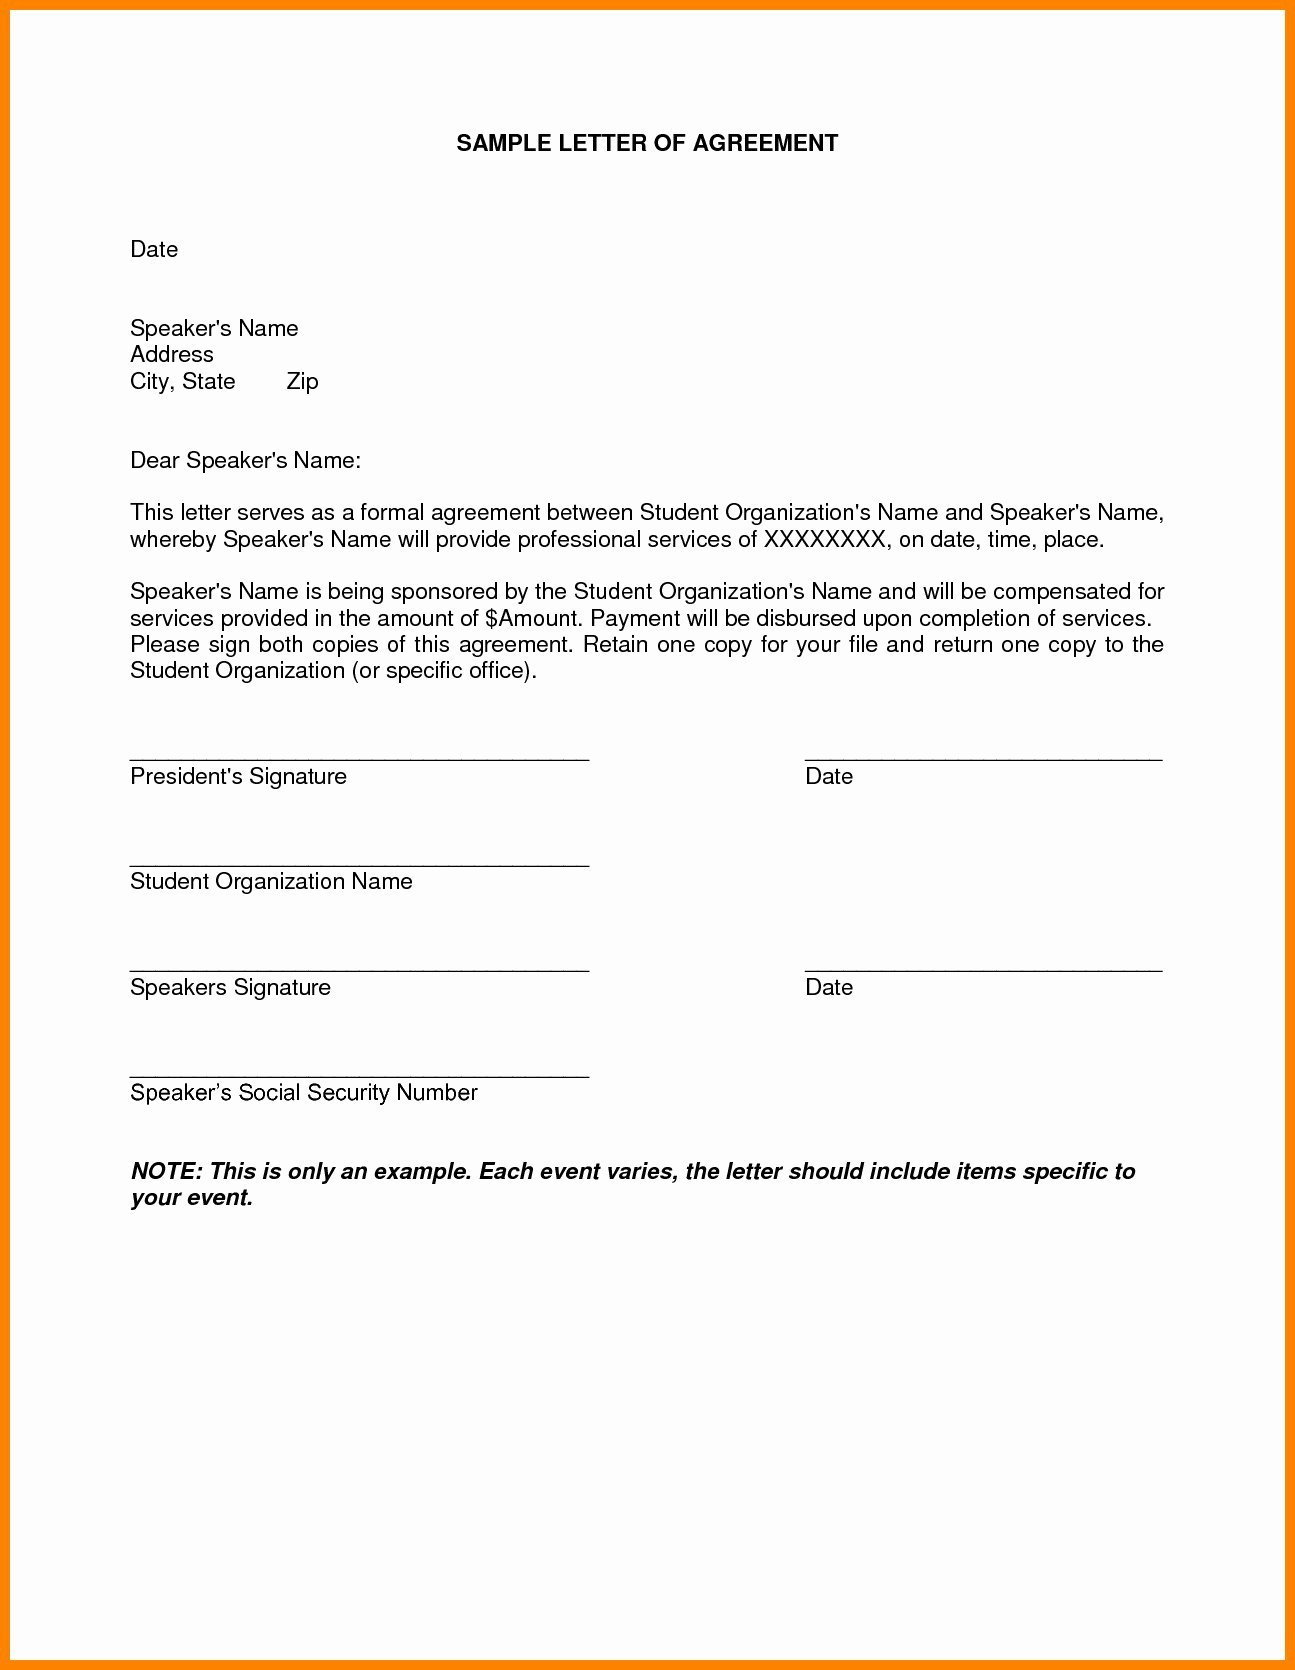 Debt Settlement Agreement Template Lovely Debt Settlement Agreement Letter Template Samples